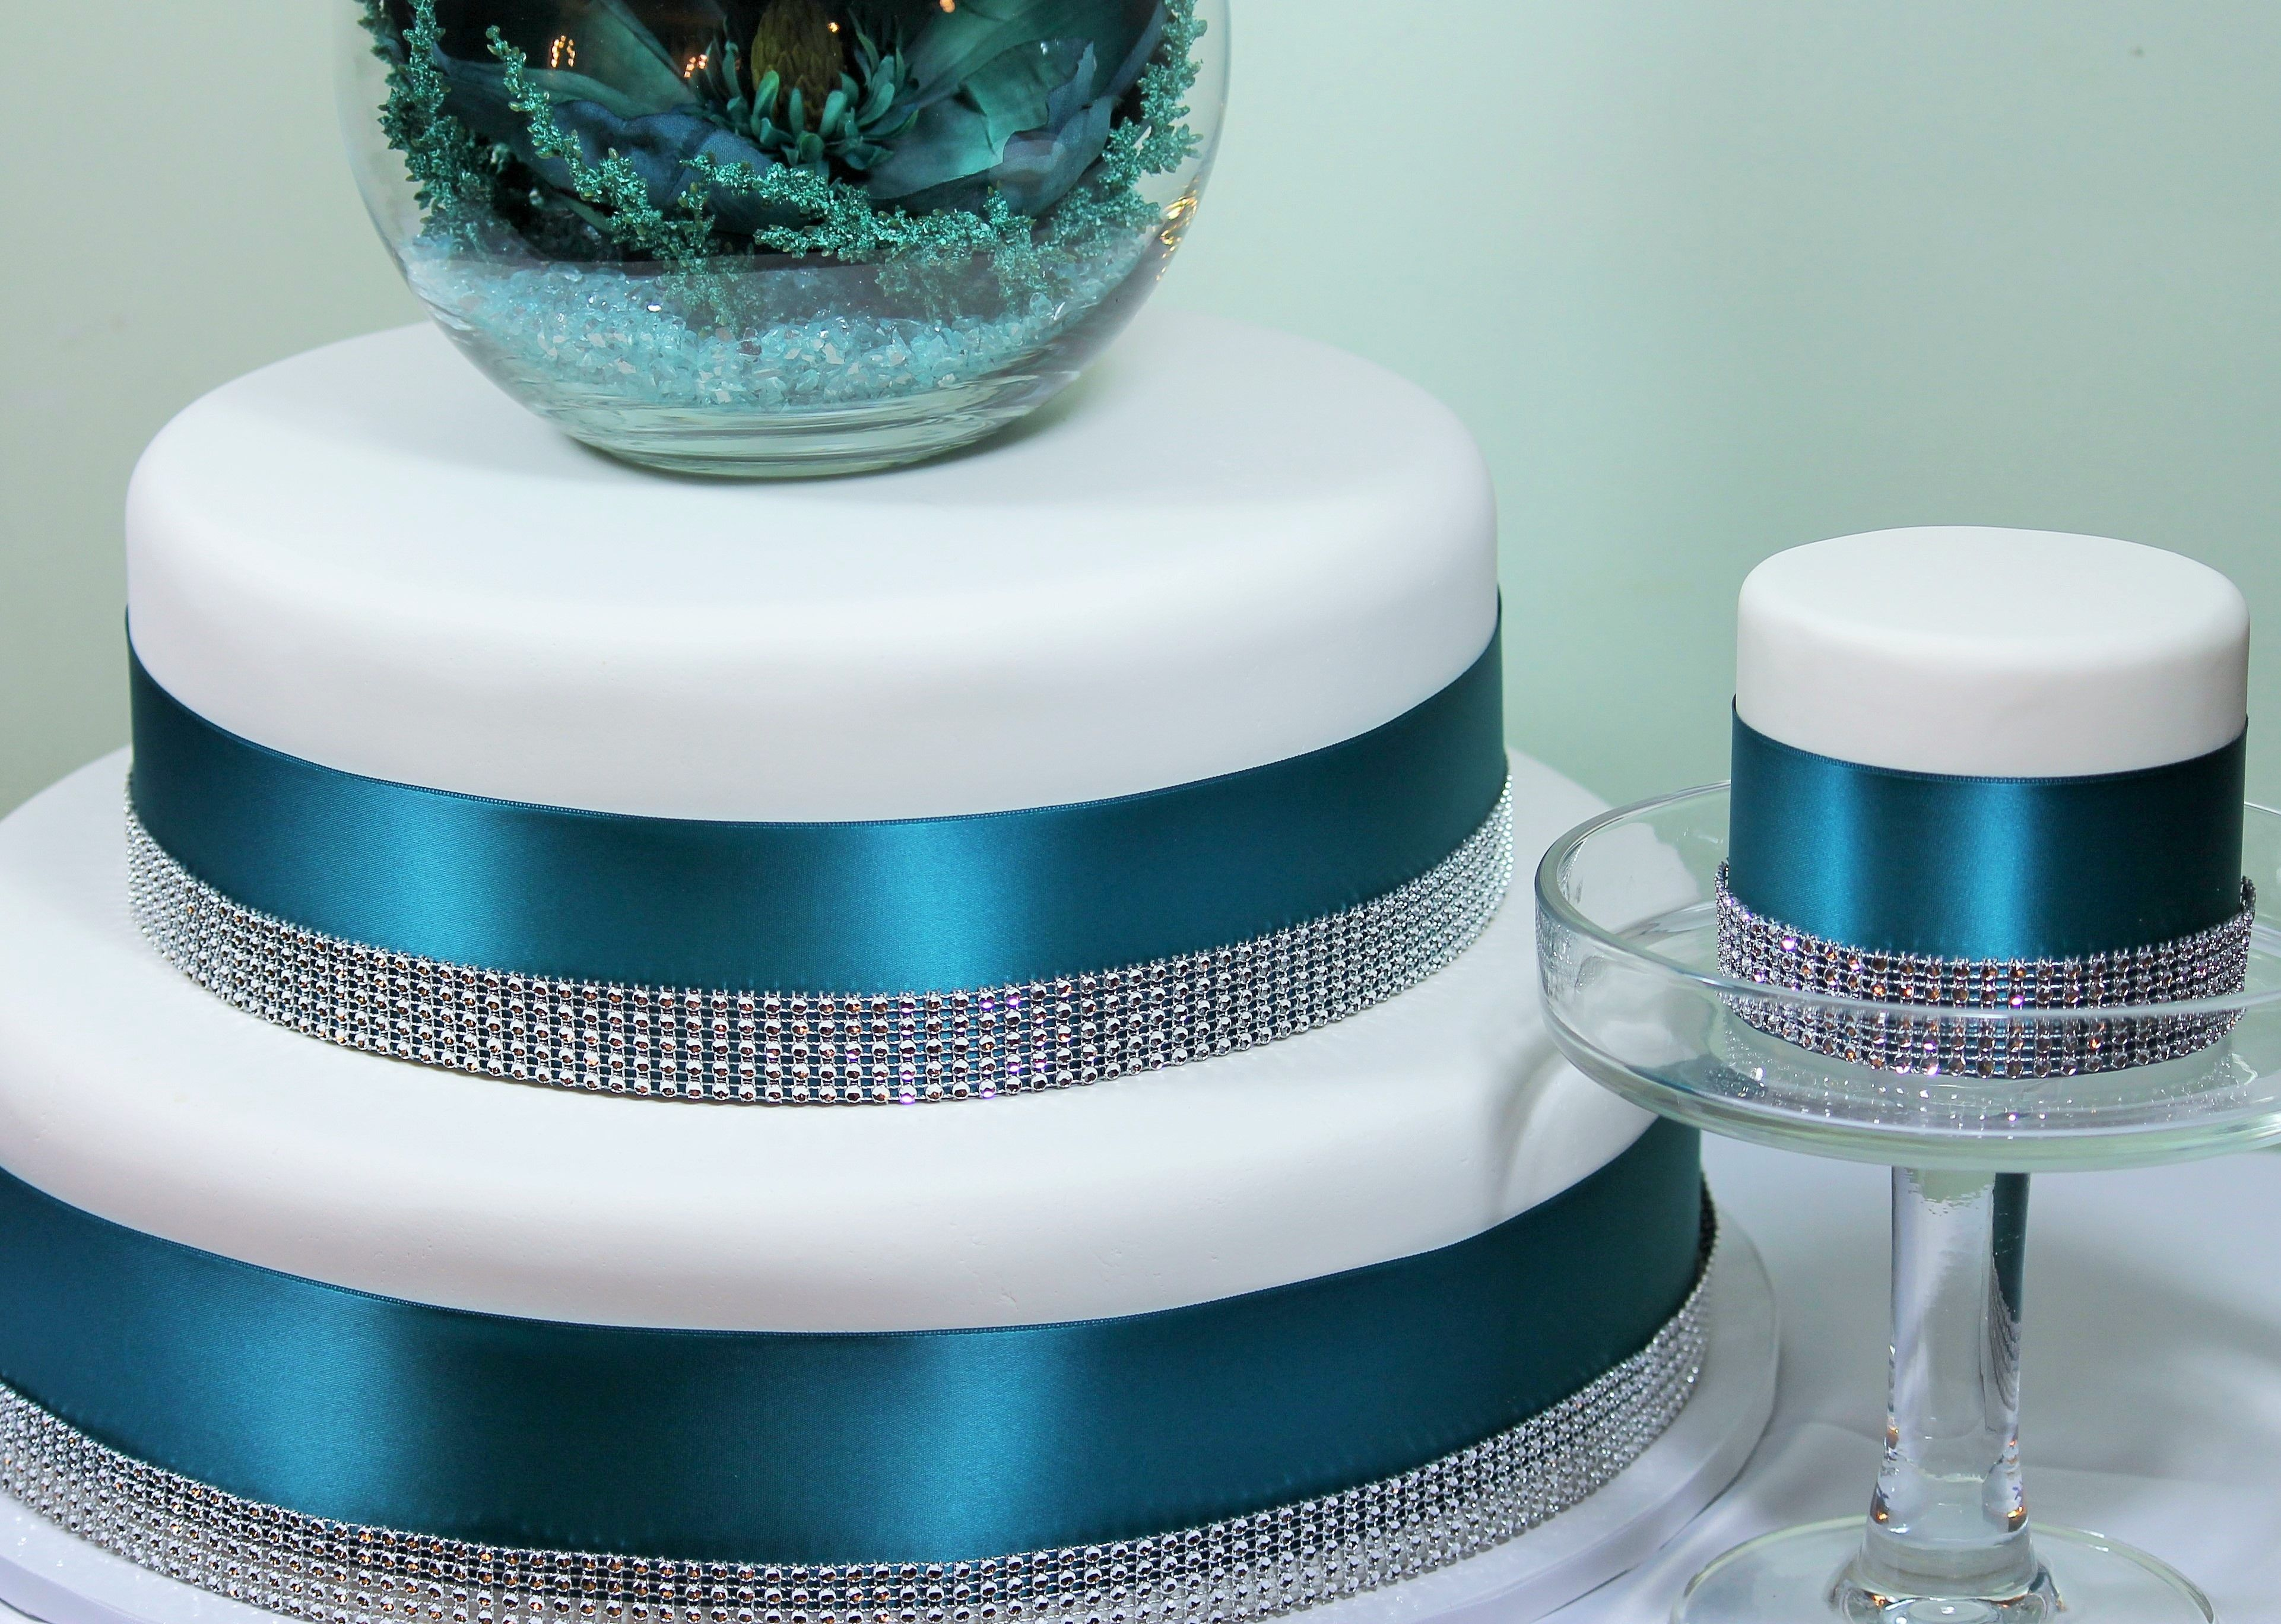 Rent this bedazzled beauty wedding cake from Cake Imposteurs!